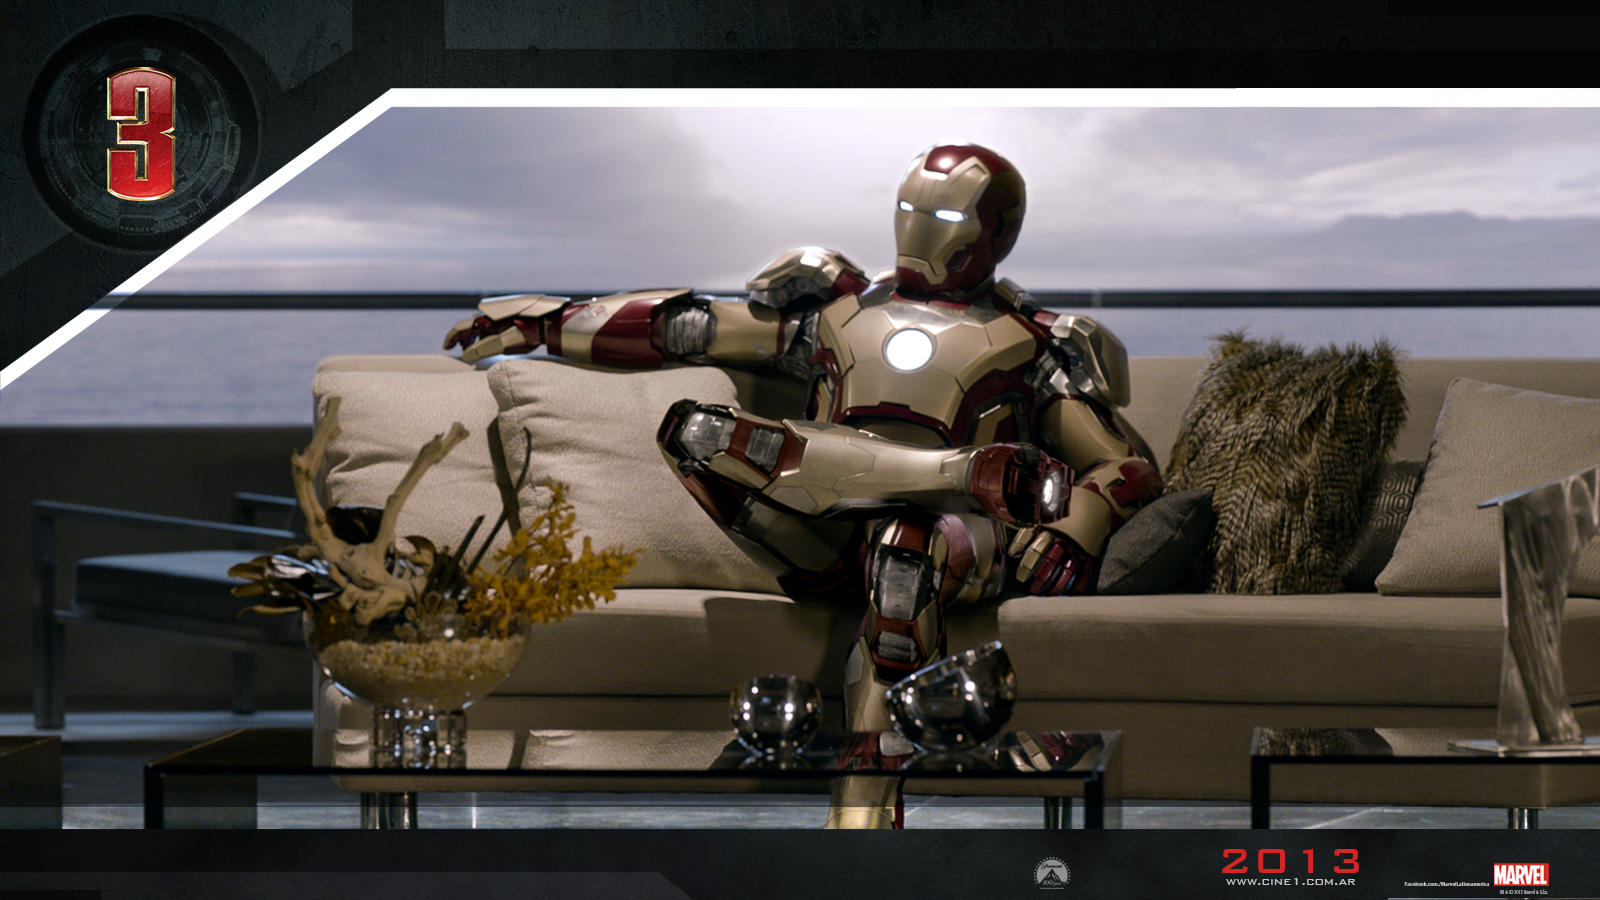 Wallpaper Iron Man 3 1600x900jpg 1600x900